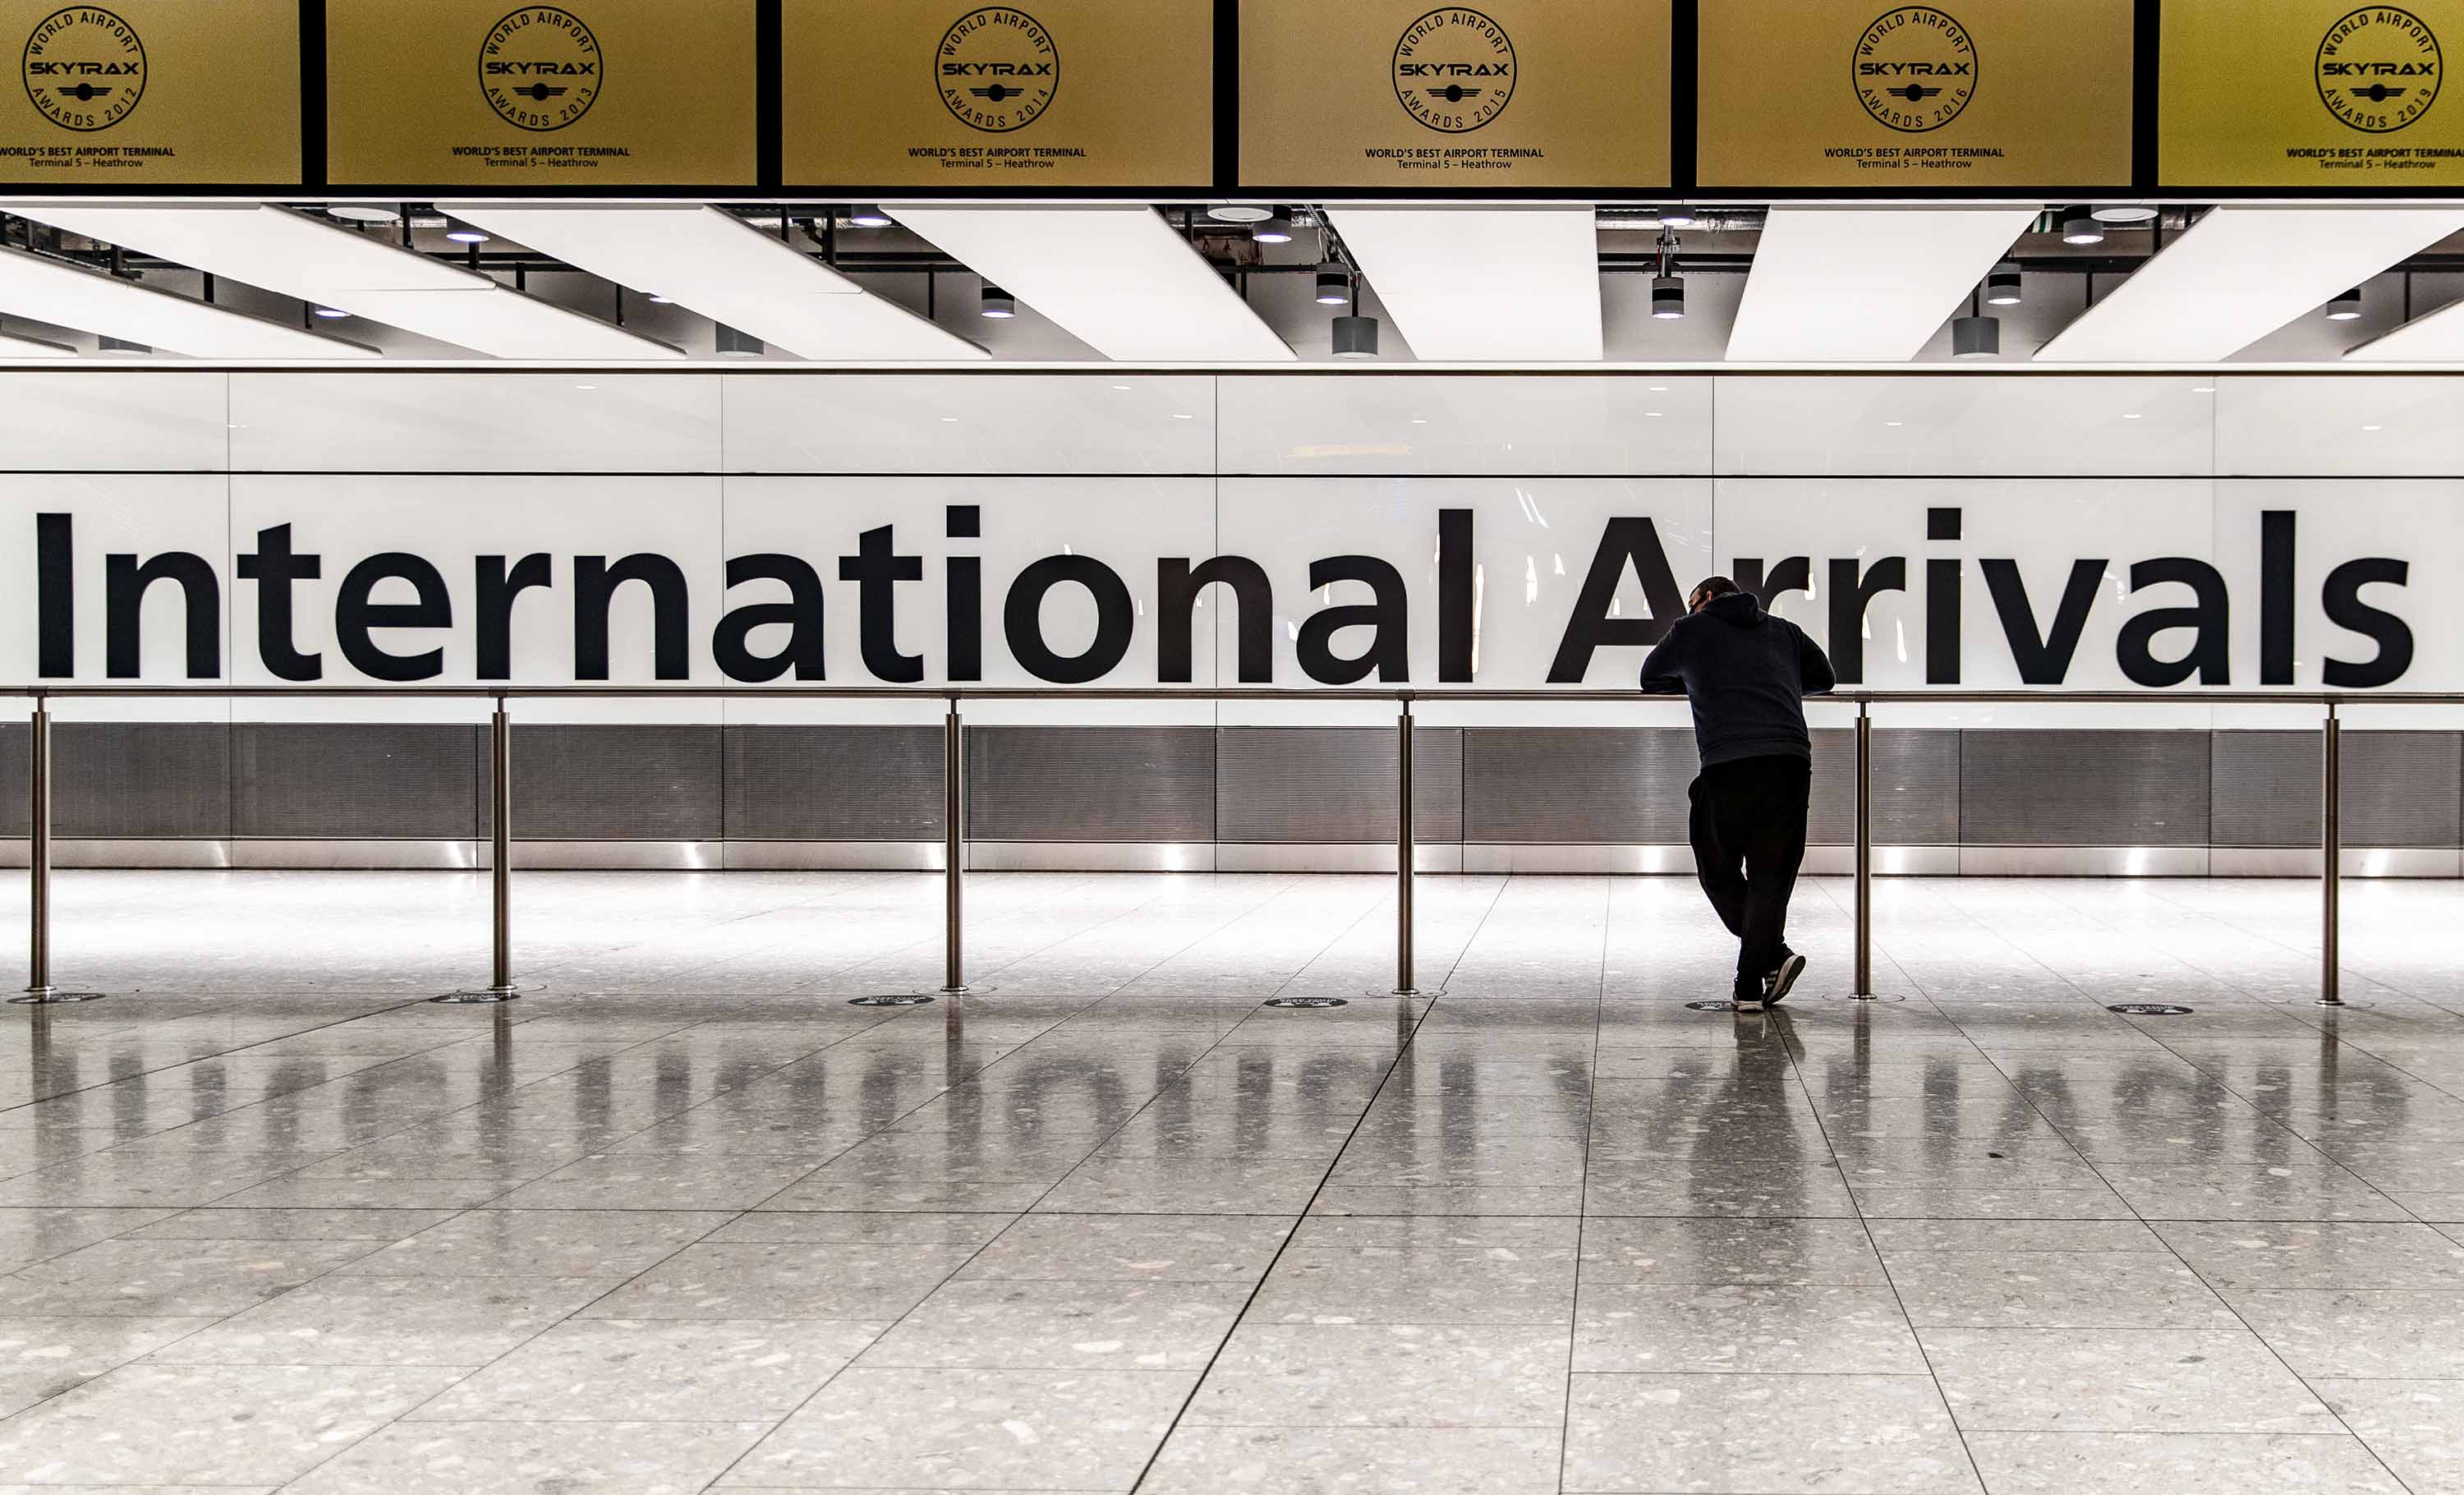 A person waits at the Heathrow Airport international arrival hall in London, on January 29.